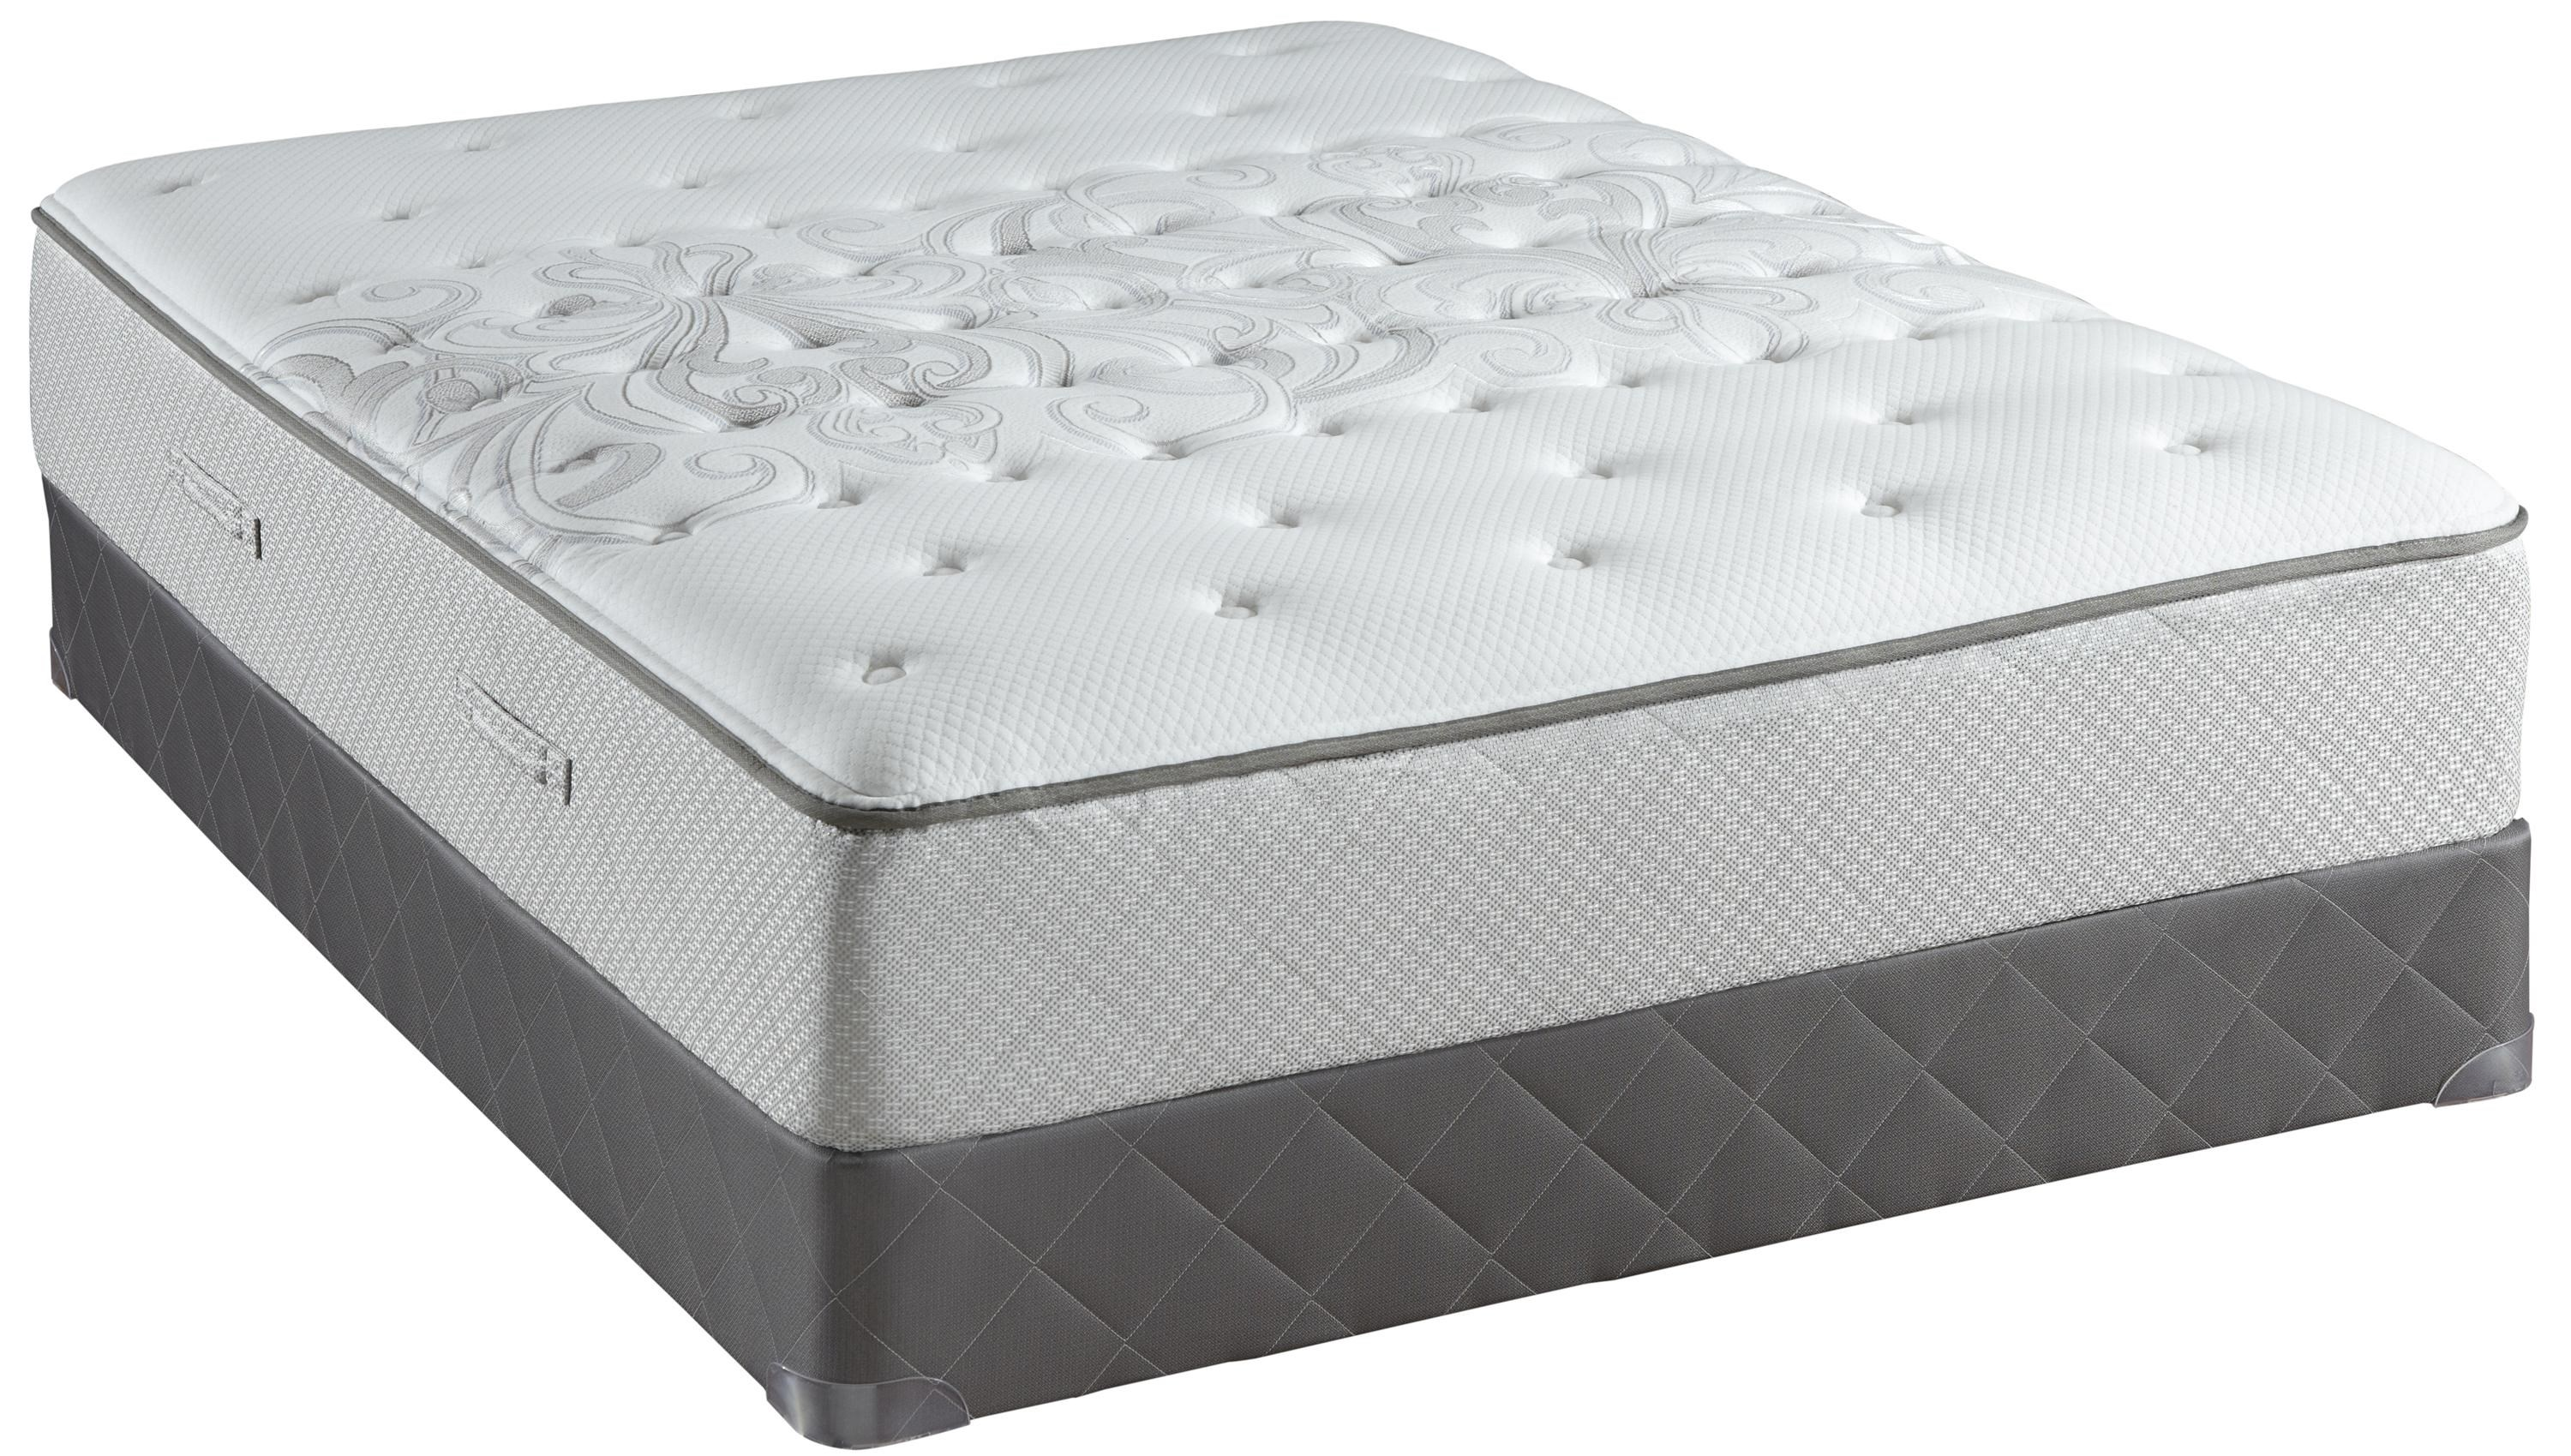 Sealy Posturepedic Gel 2013 Twin Cushion Firm Mattress and